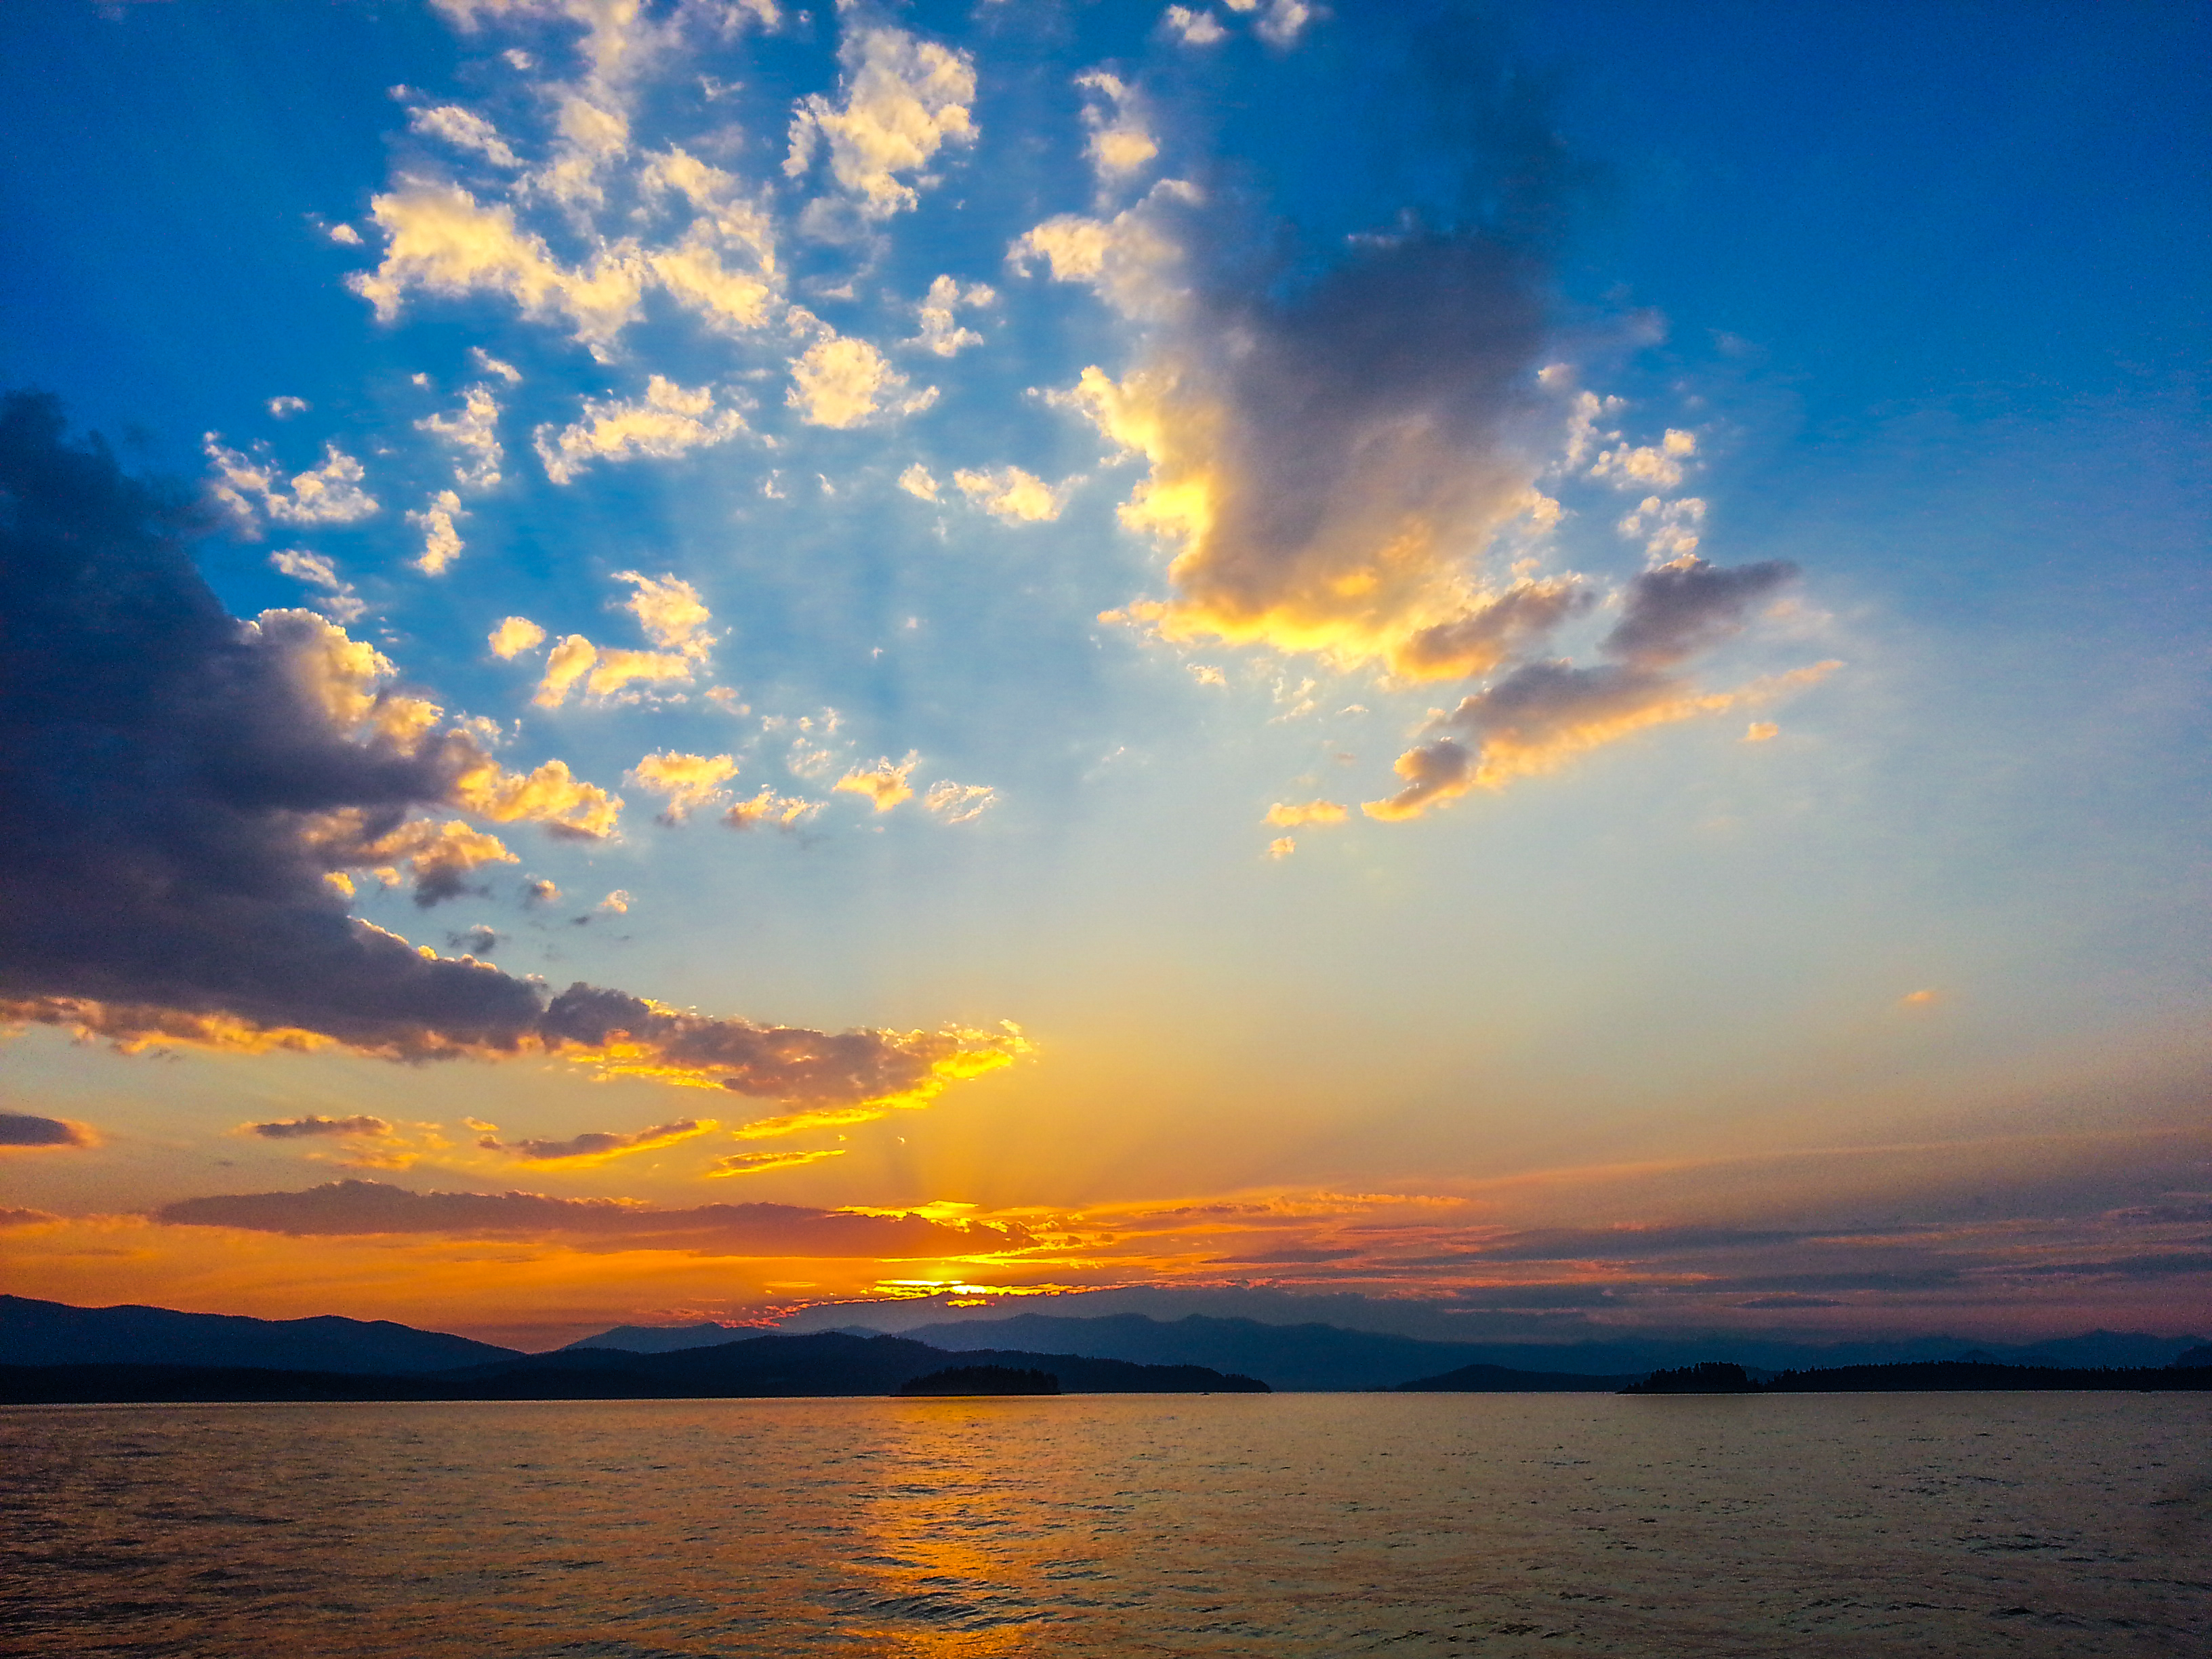 10 Things To Do In Sandpoint In the Summer